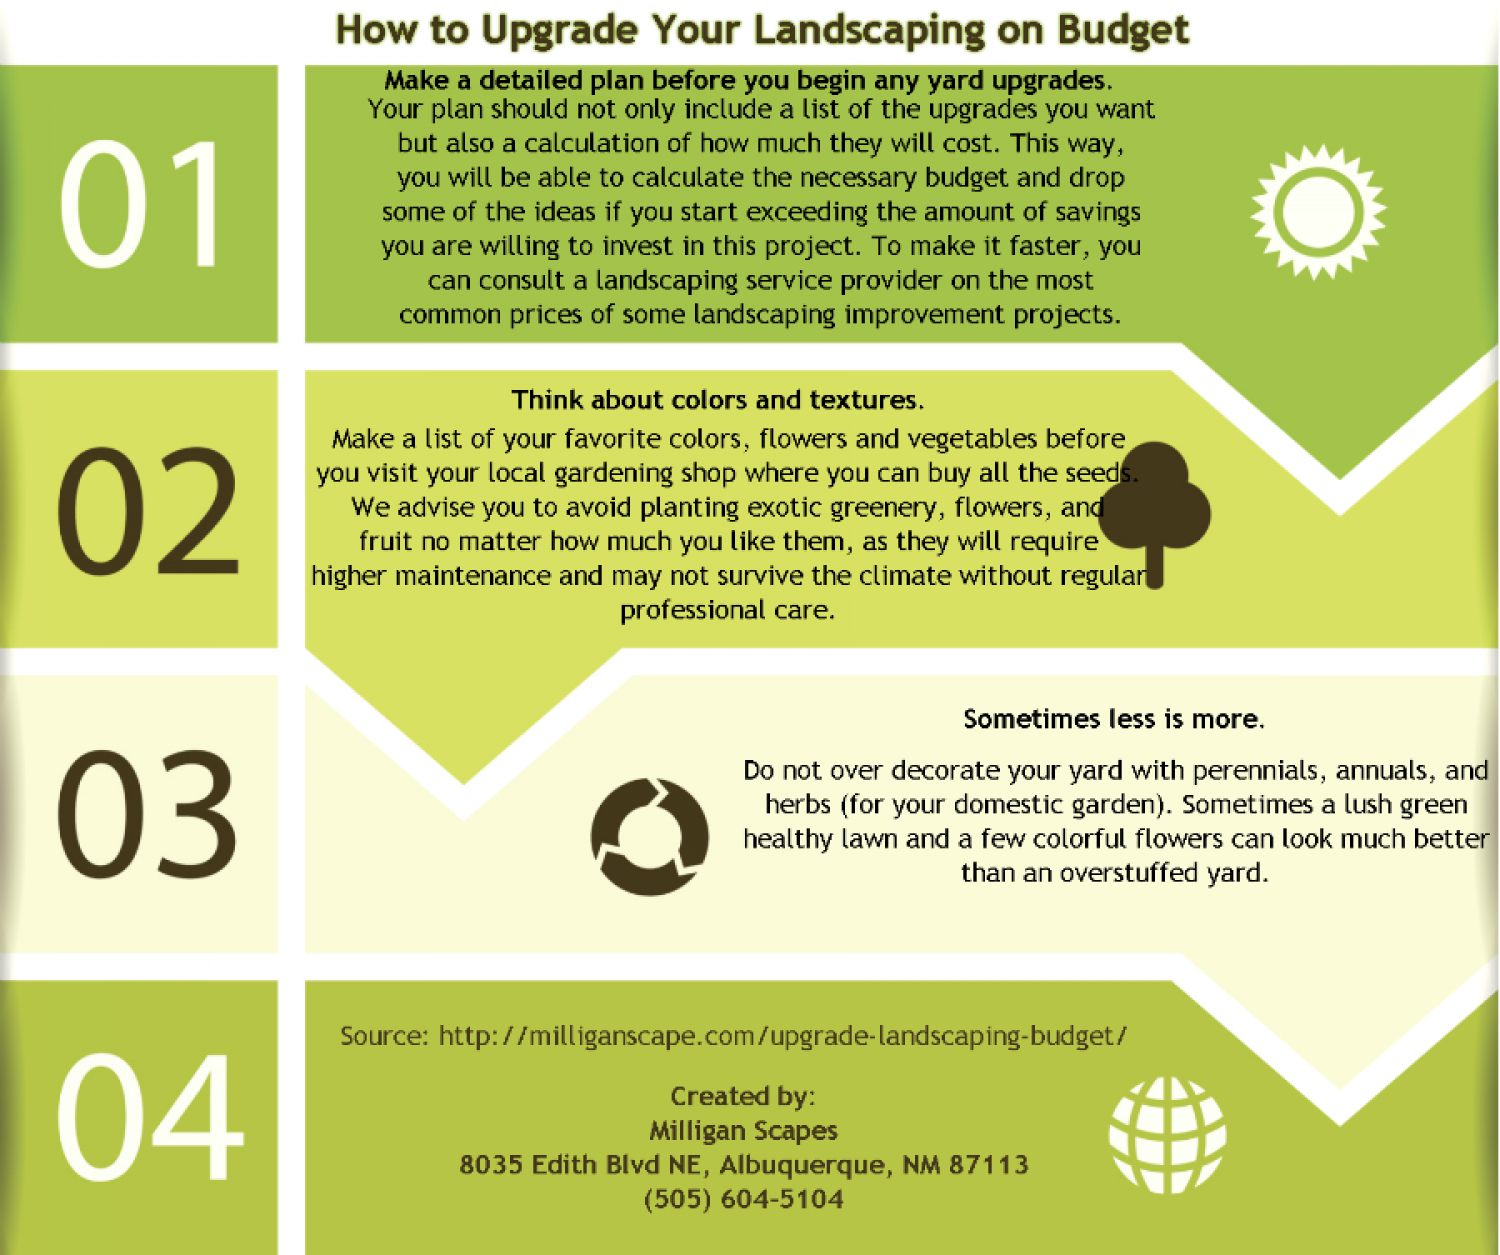 How to Upgrade Your Landscaping on Budget Infographic